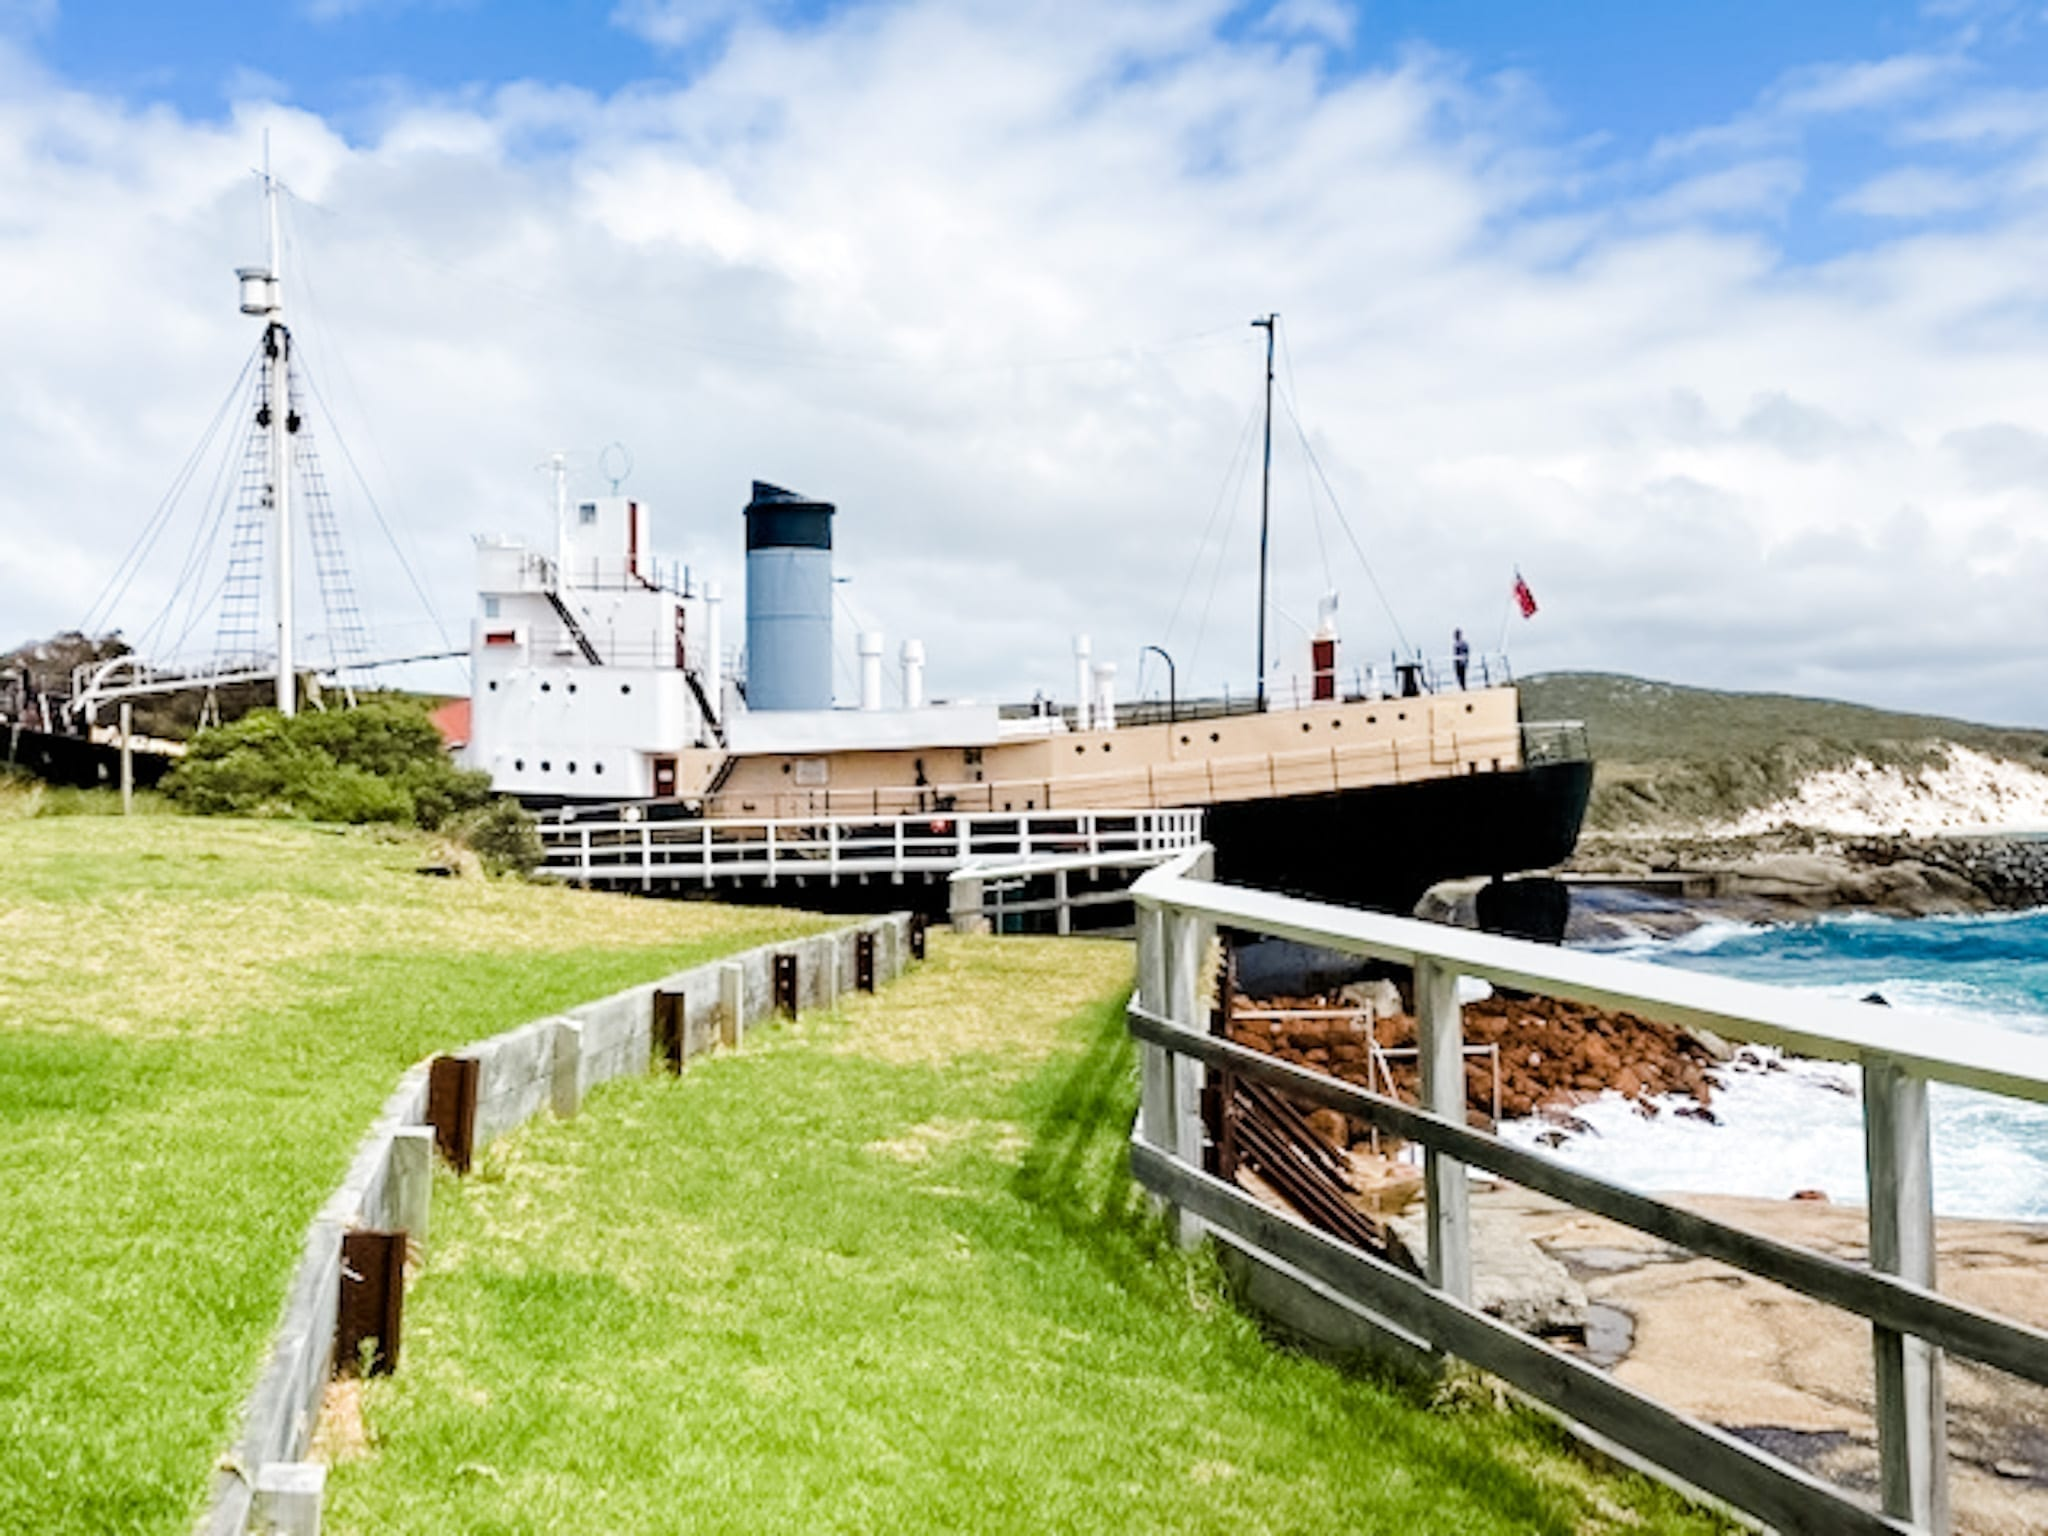 Whaling Station Albany